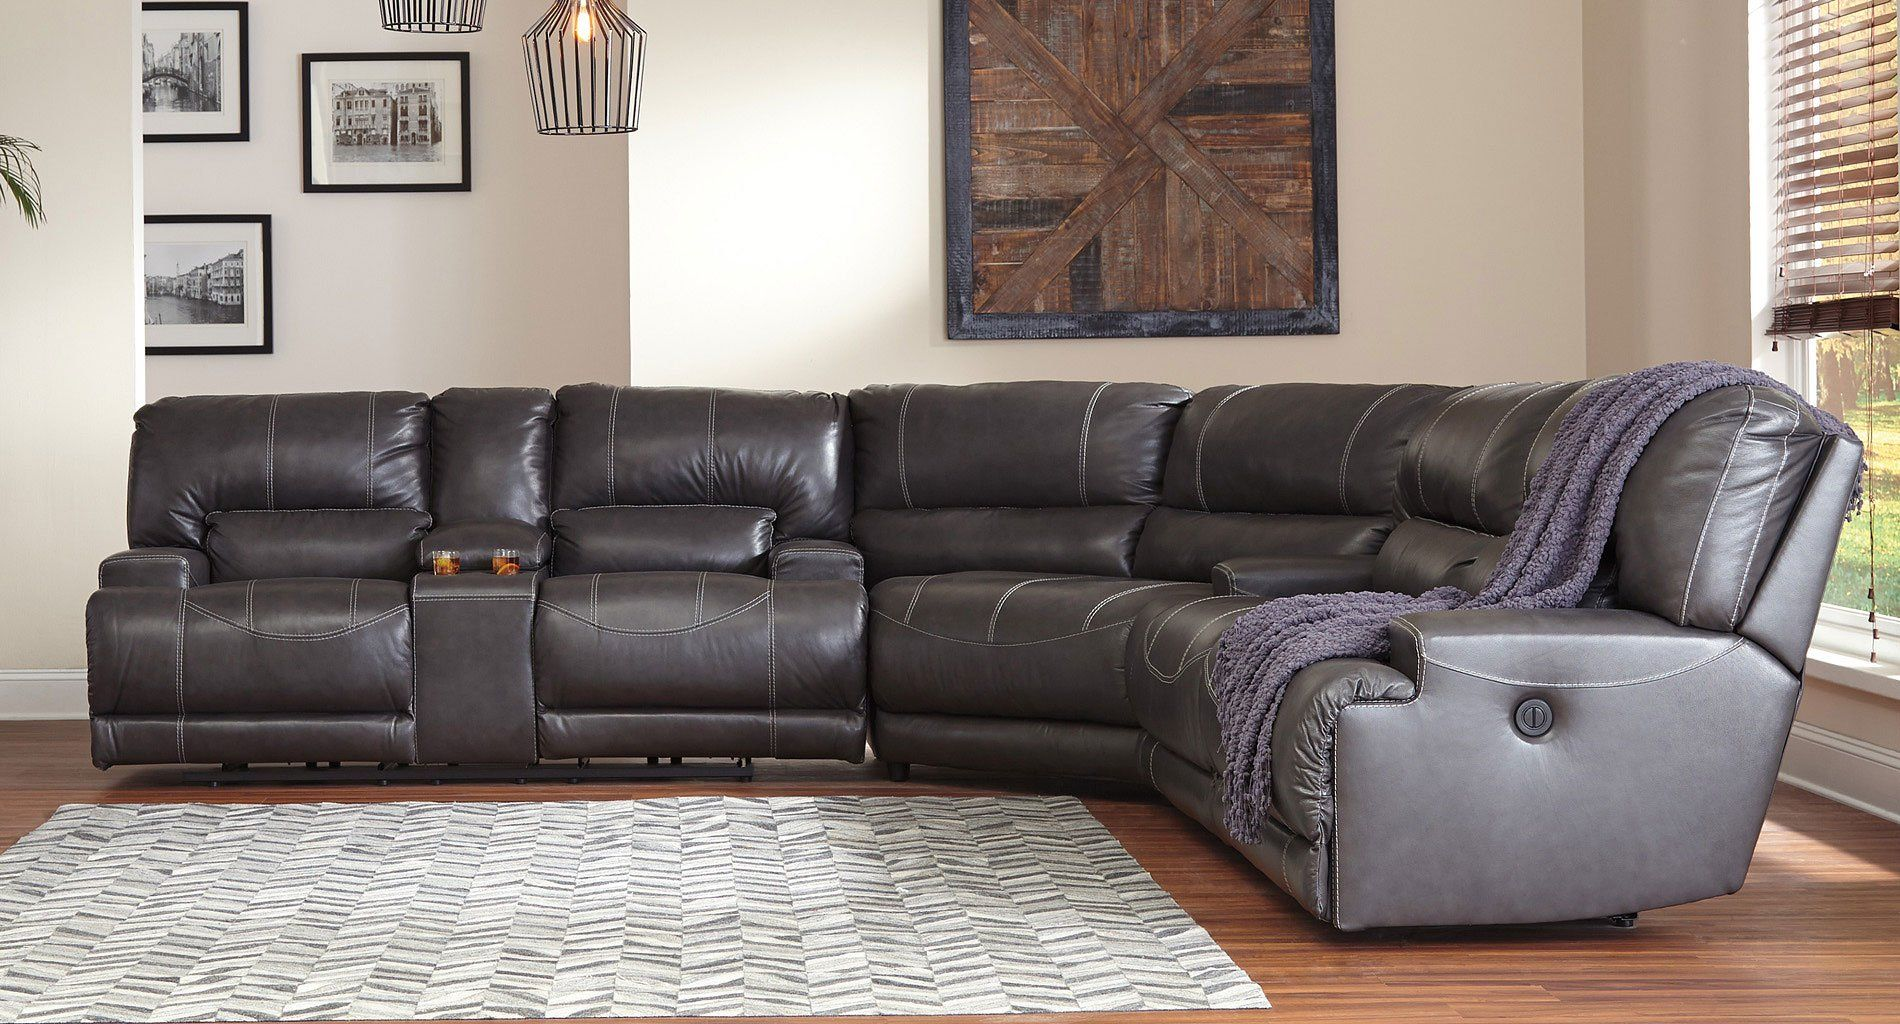 Mccaskill Gray Reclining Sectional In 2020 Reclining Sectional Build Your Own Sectional Sectional